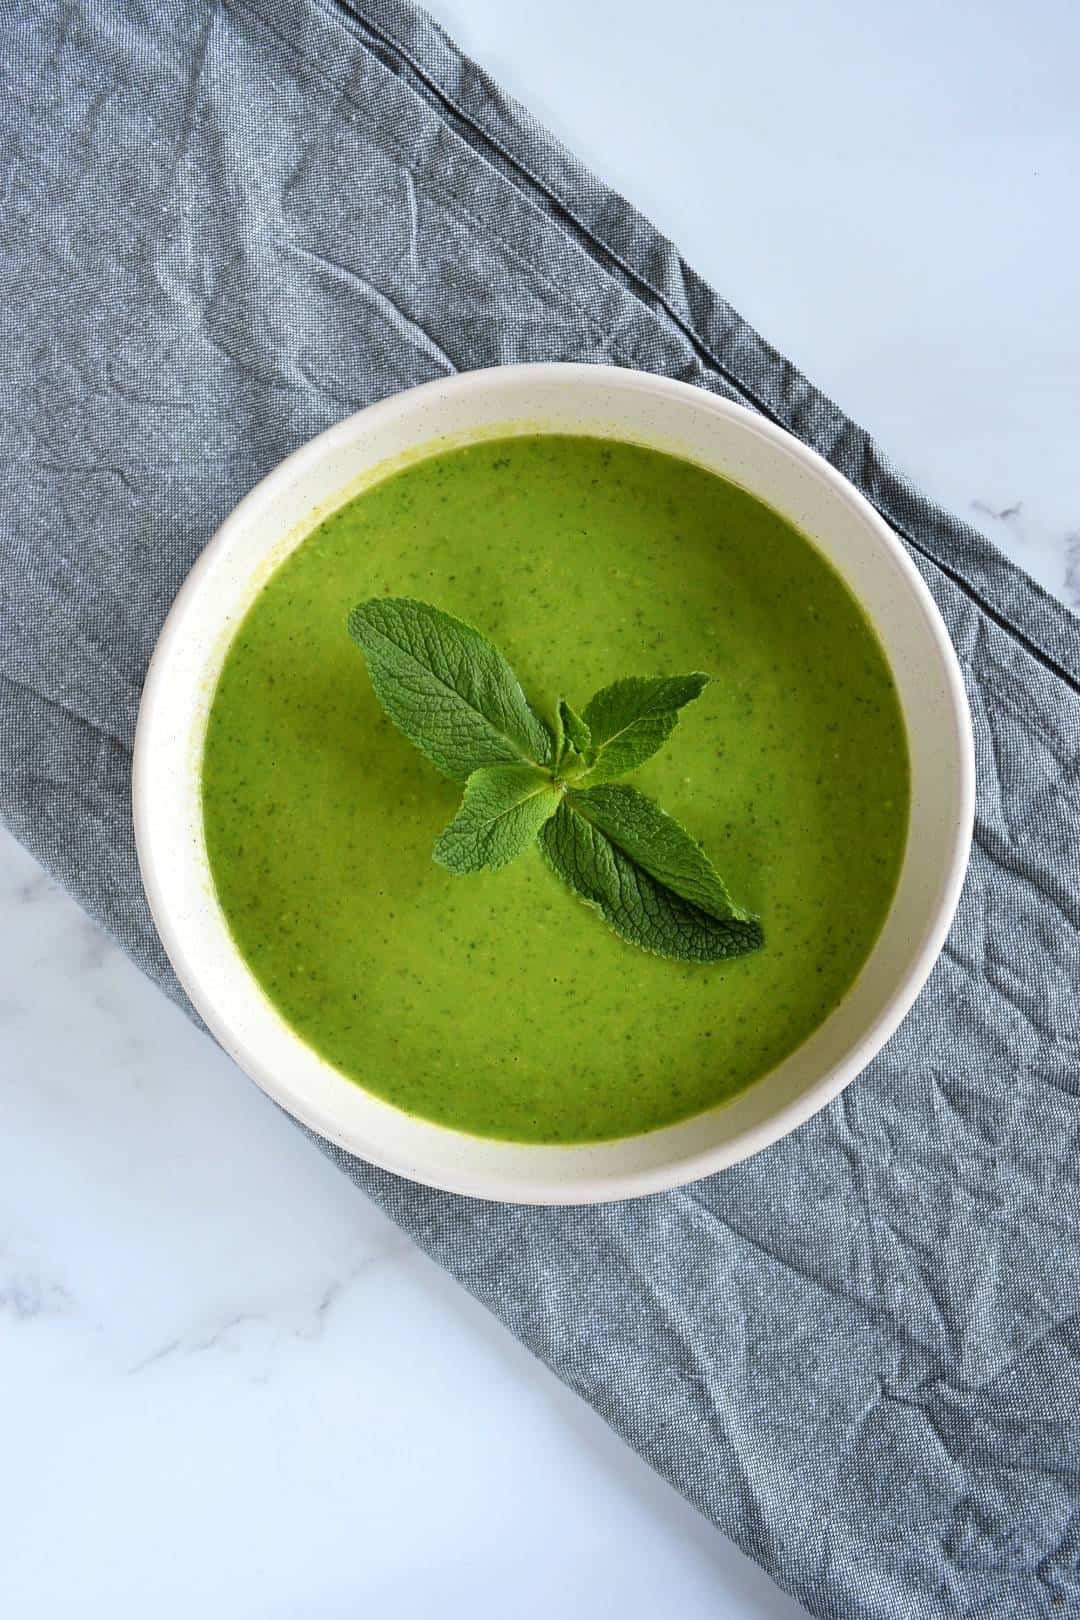 Minty pea soup in a white bowl with a sprig of mint on top.